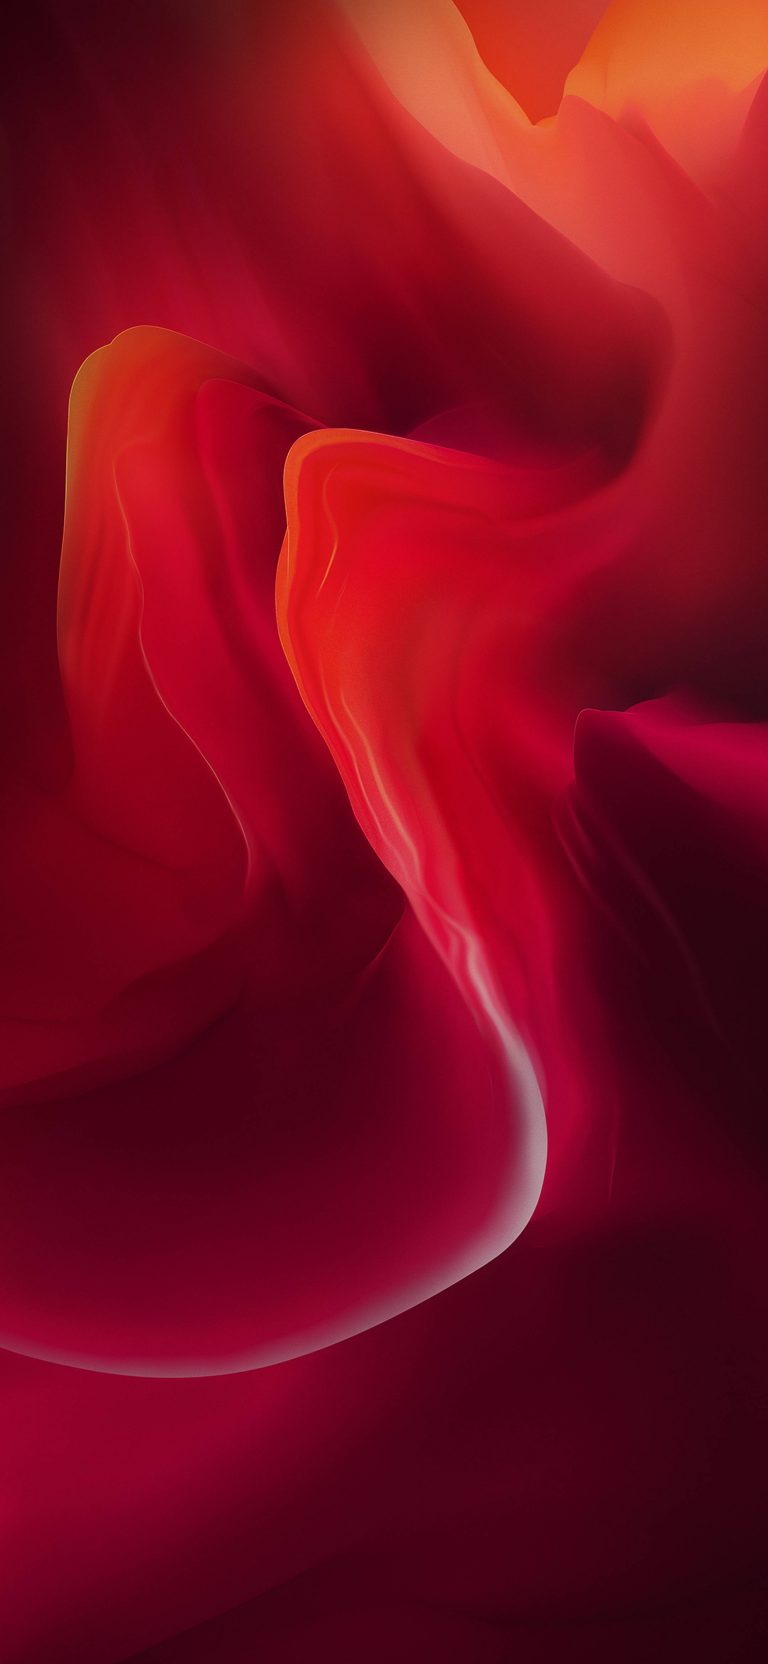 OnePlus 6T Stock Wallpaper 005 2160x4680 768x1664